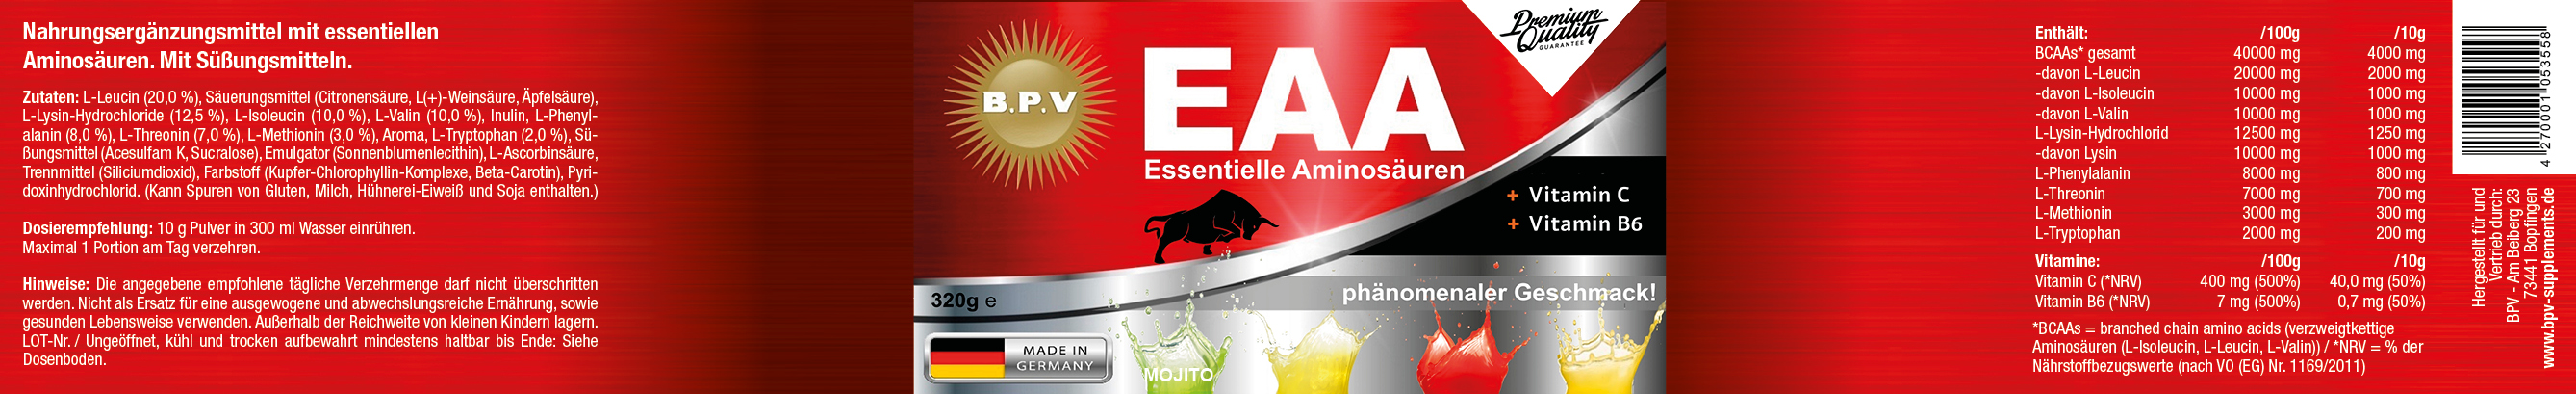 ANSICHT_EAA-Instant-Pulver_320g_750ml-Dose_Mojito_